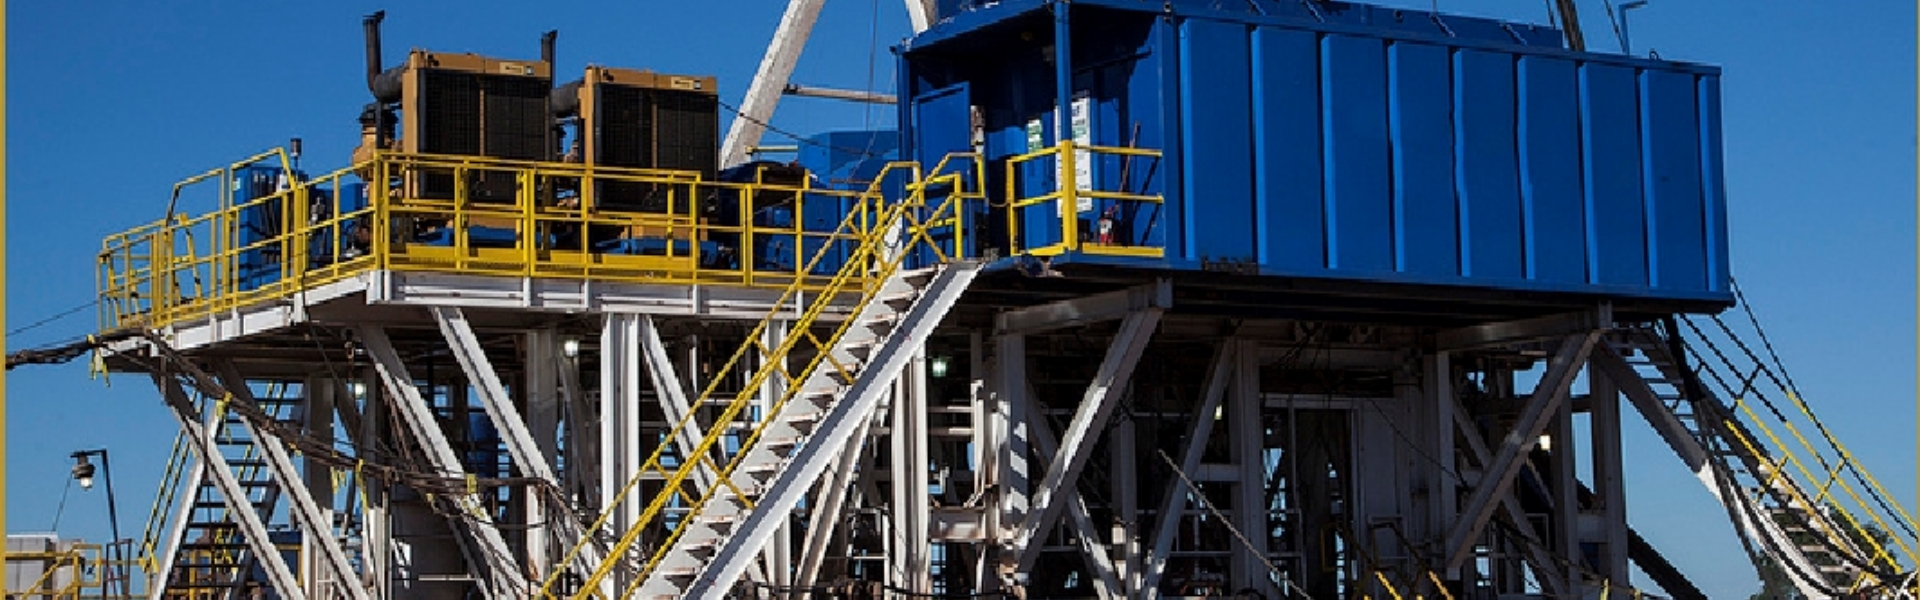 Oilfield Chemical Suppliers, drilling additives fo the oilfield production chemicals industry.